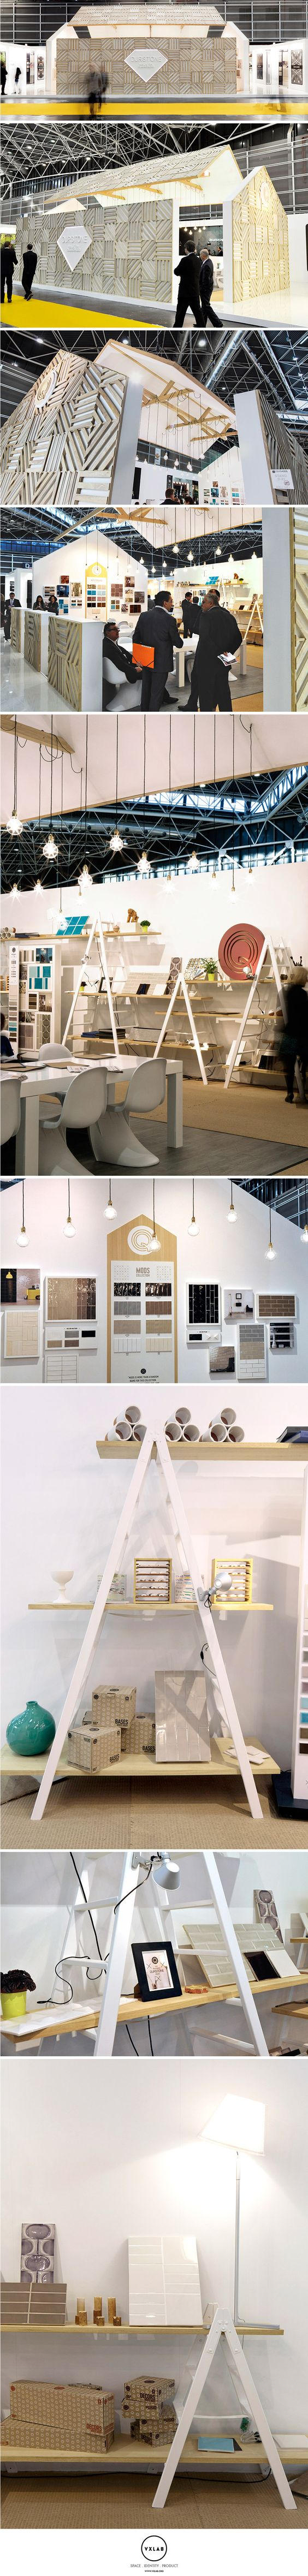 Blooming House Stand Project - Durstone & Q Tiles Cevisama 2013 Exhibition. Design by VXLAB www.vxlab.org: